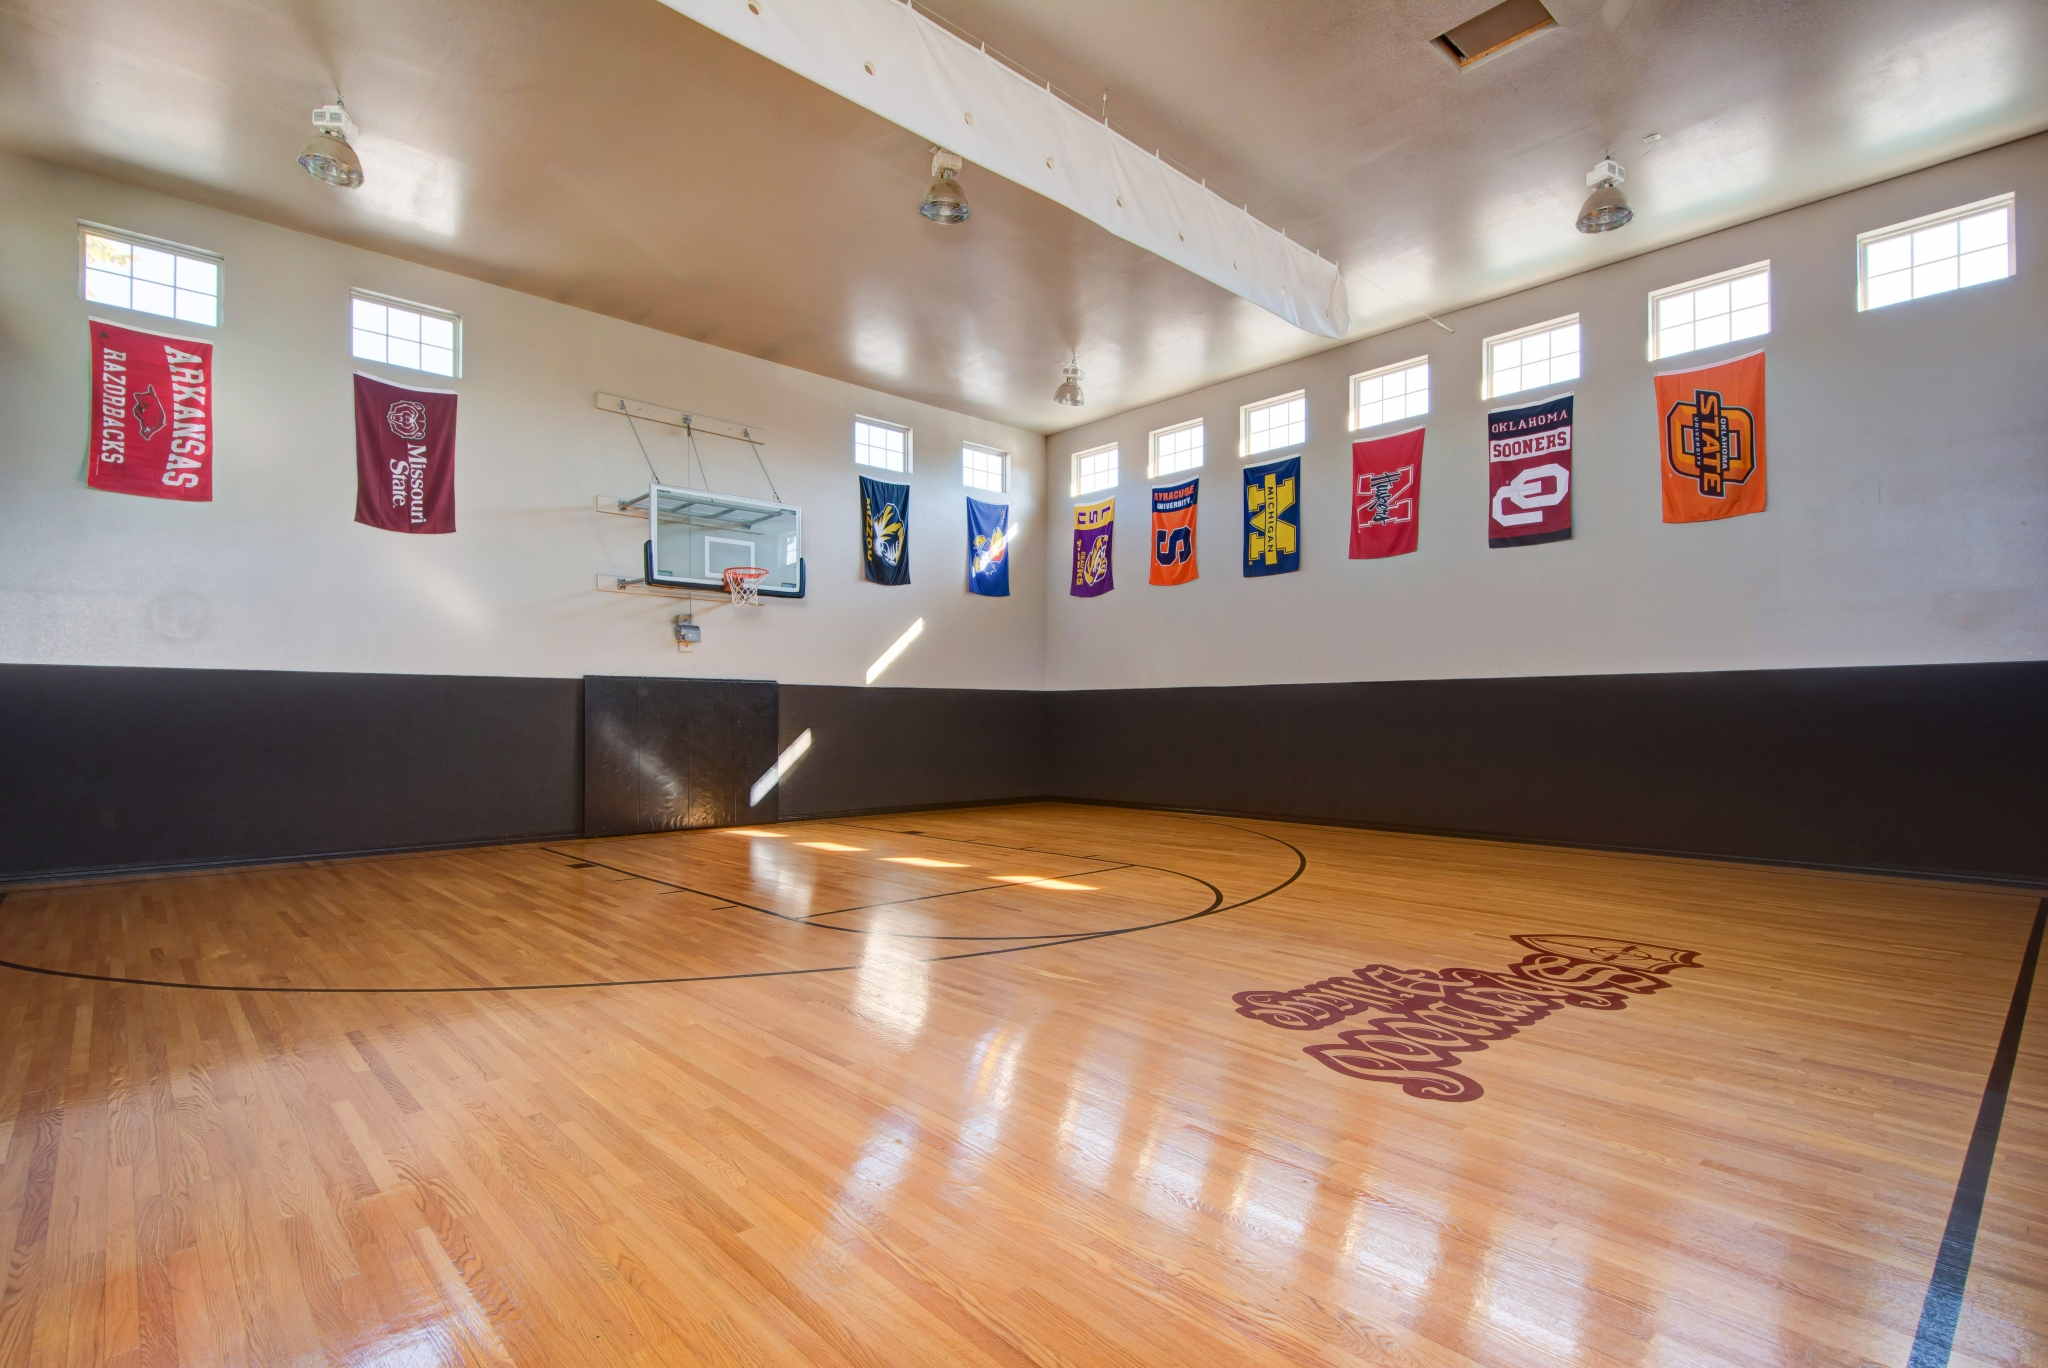 indoor basketball court amenity